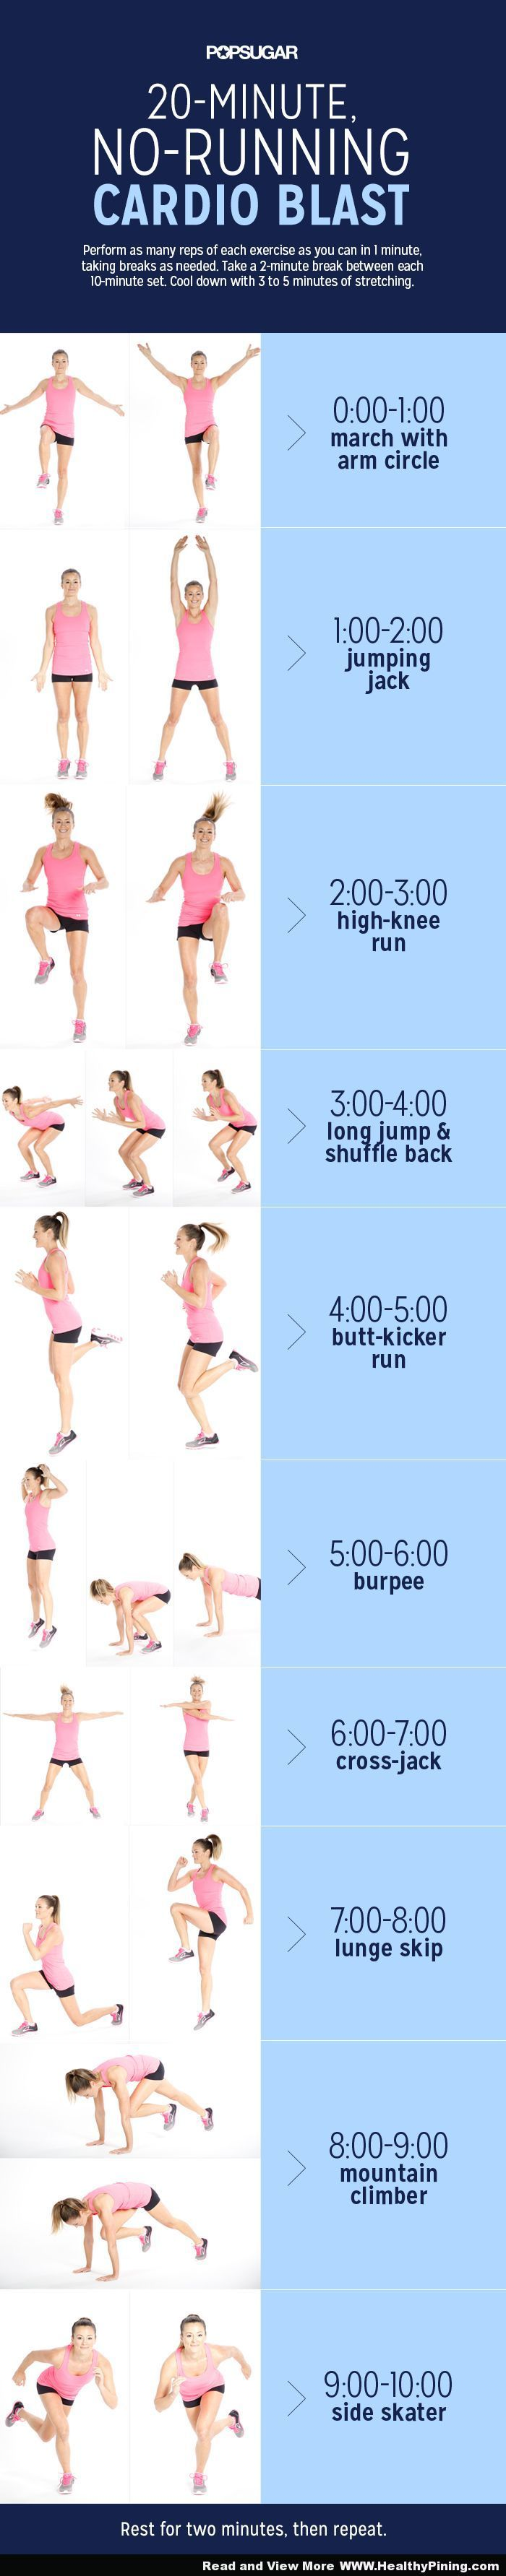 Fitness and Health – 20-Minute No-Running Cardio Blast - Healthy Pining